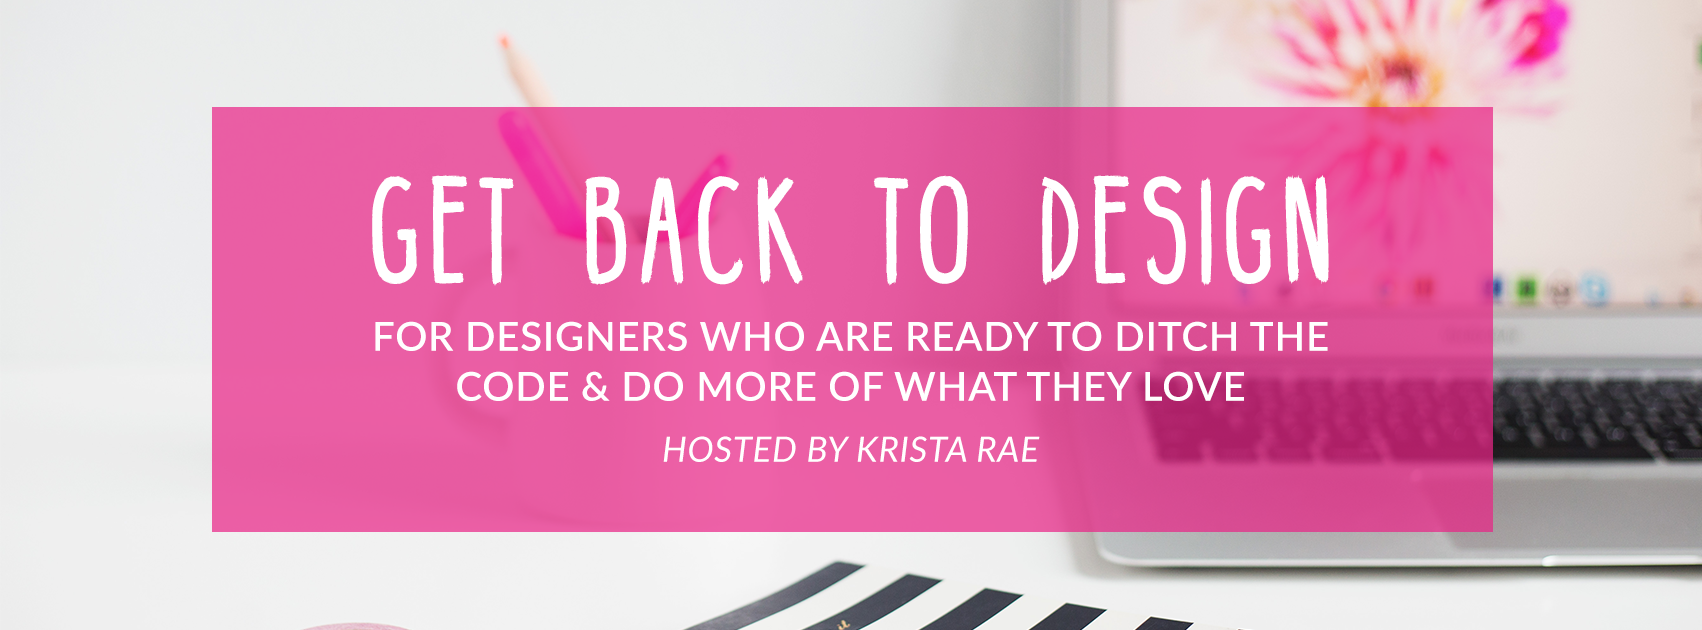 Get Back To Design - For Designers Who Are Ready To Ditch The Code And Do More Of What They Love